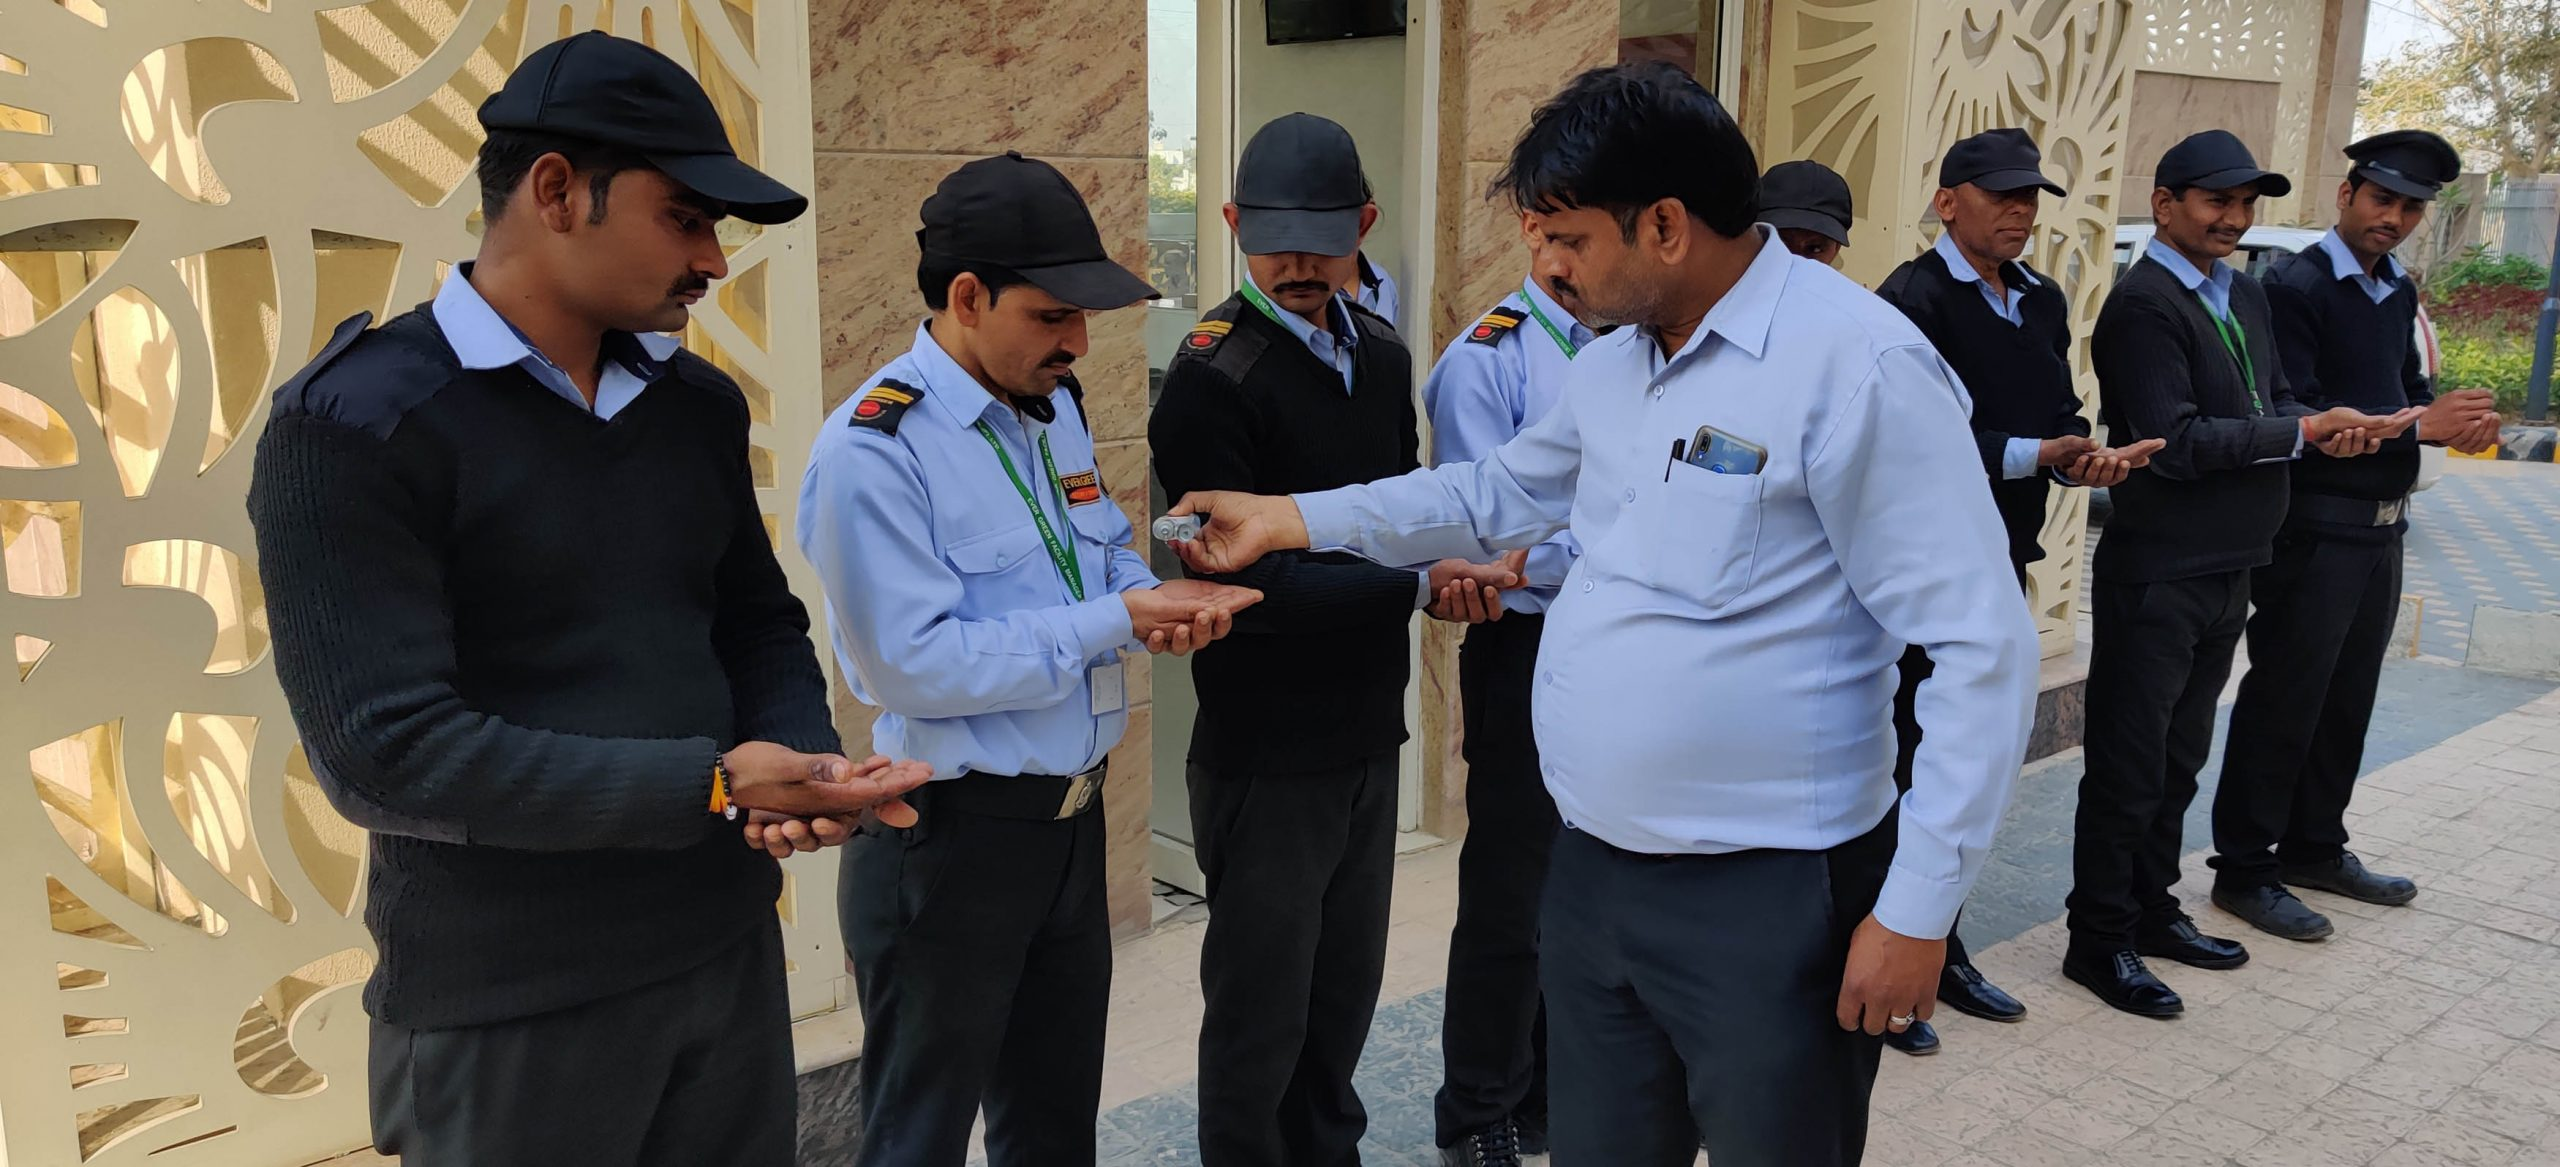 SpideyManage, takes the responsibility to sensitize the security guards in residential apartments.